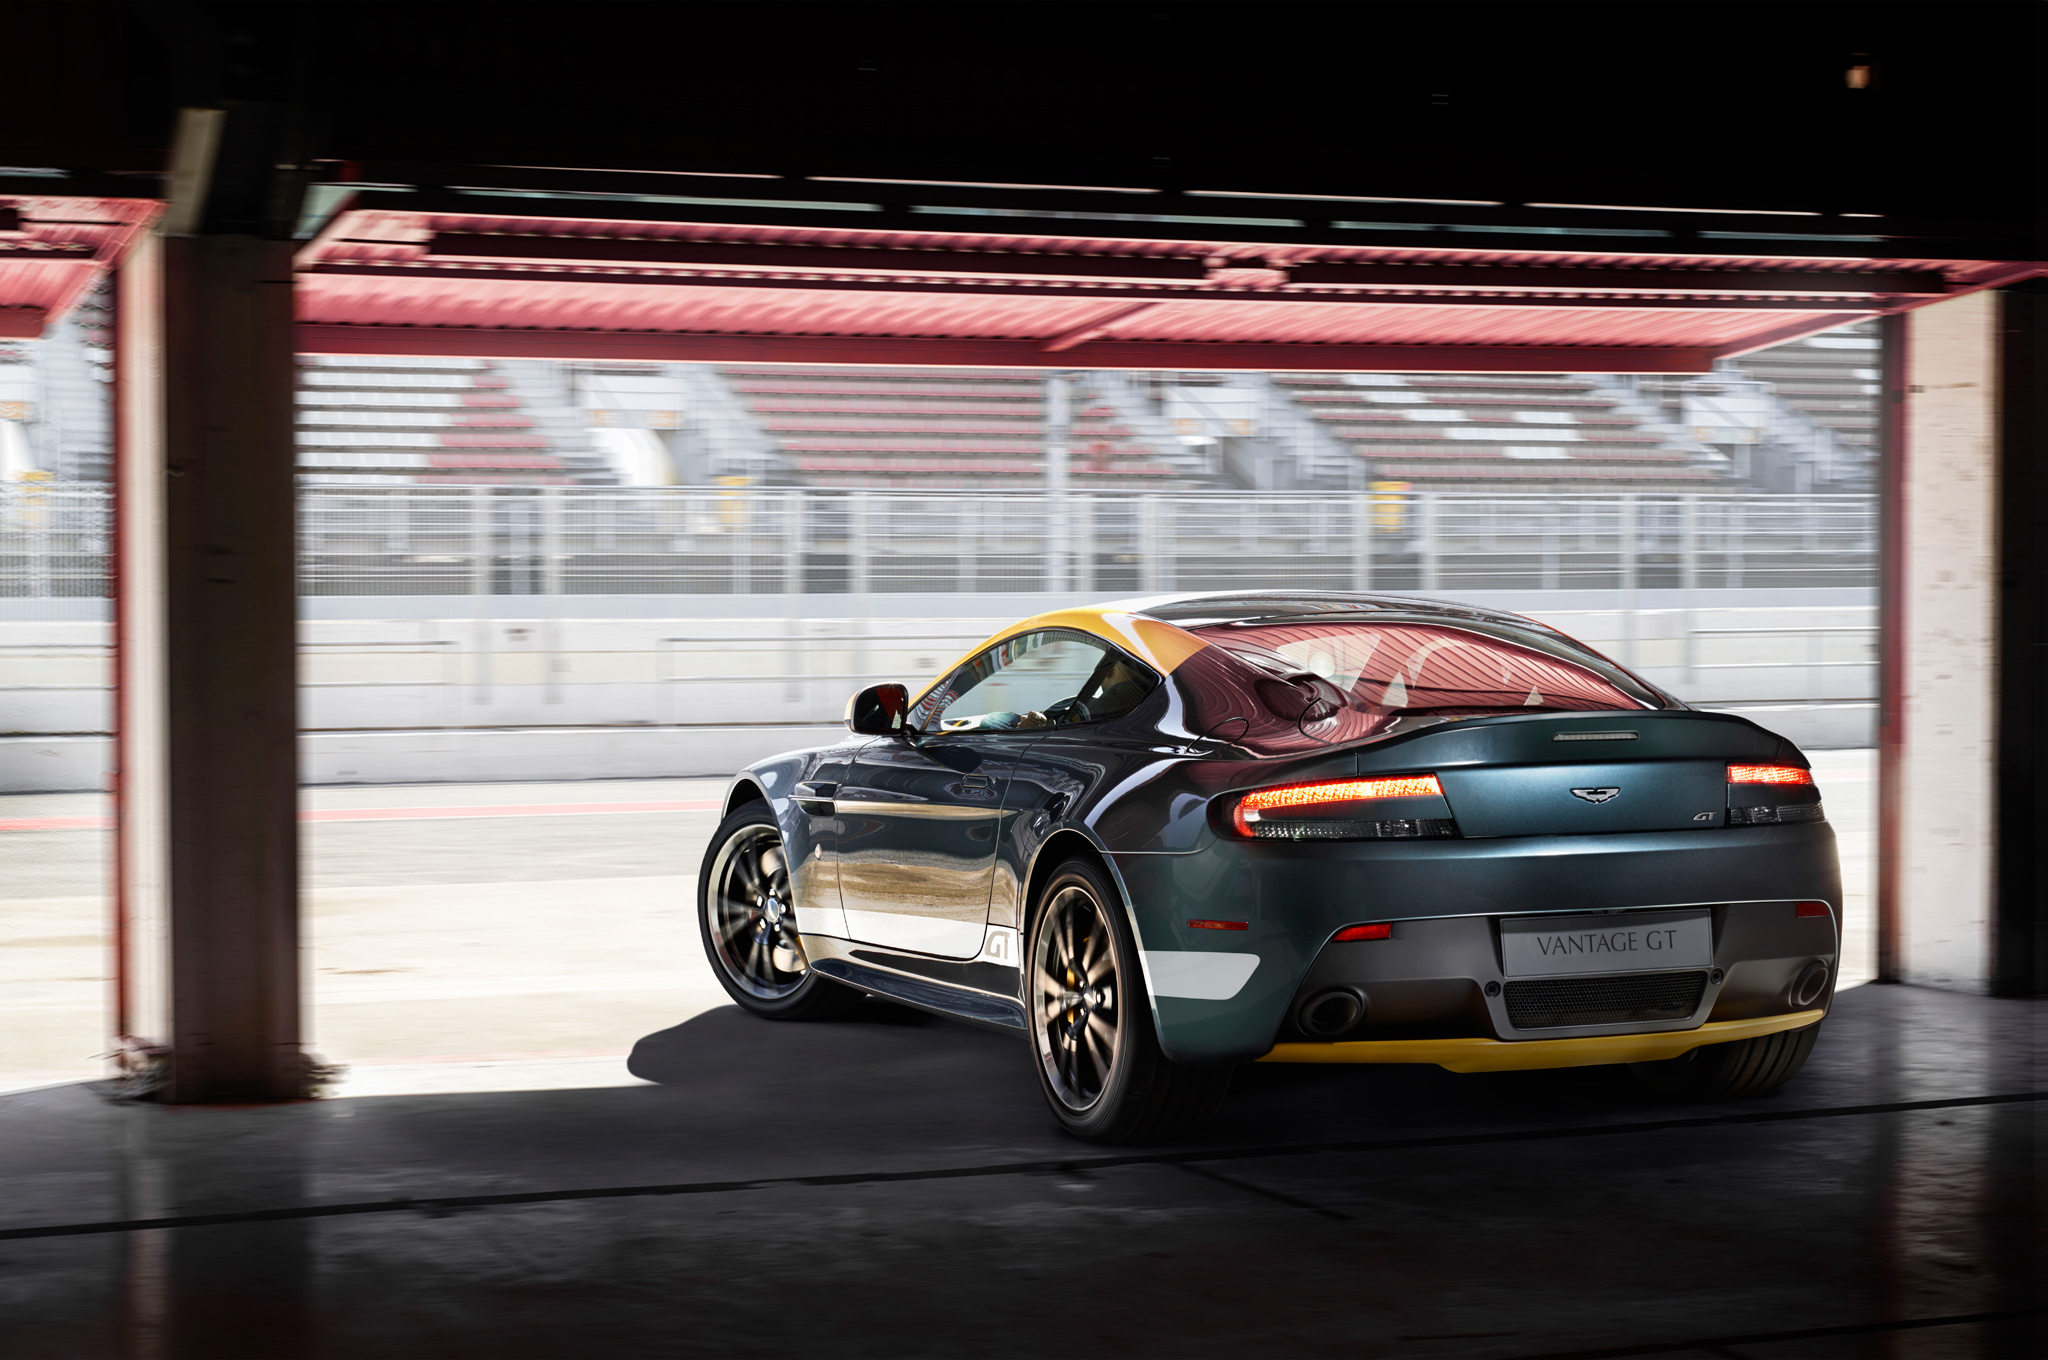 2015 Aston Martin V8 Vantage Gt Rear View (Photo 5 of 7)